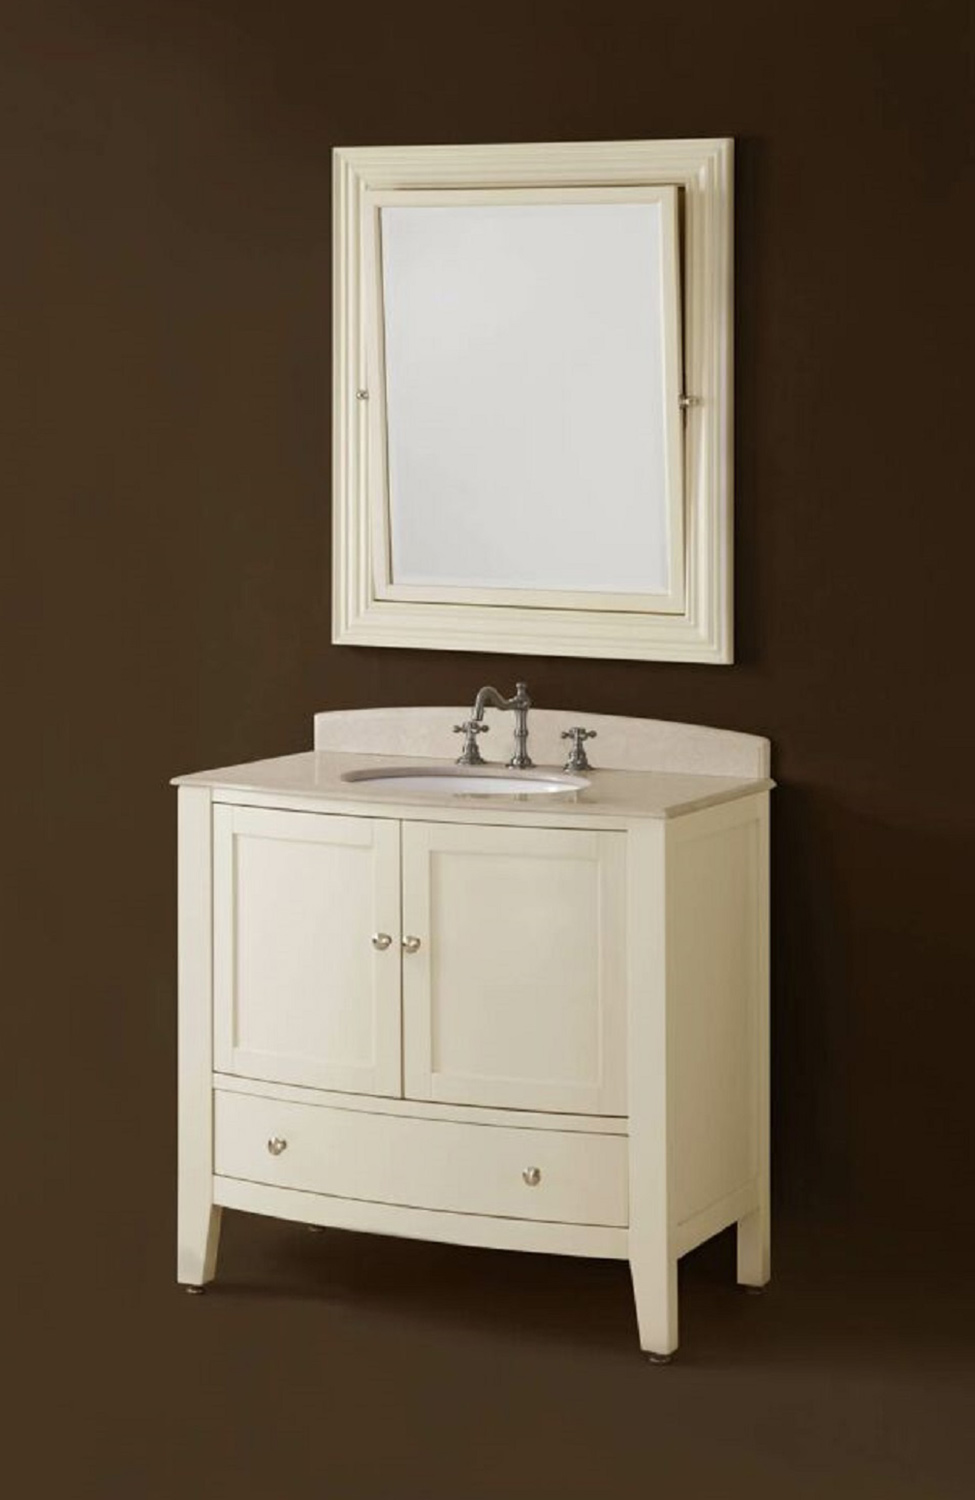 Chelsea Home Loft 36-inch Vanity with Mirror - Ivory